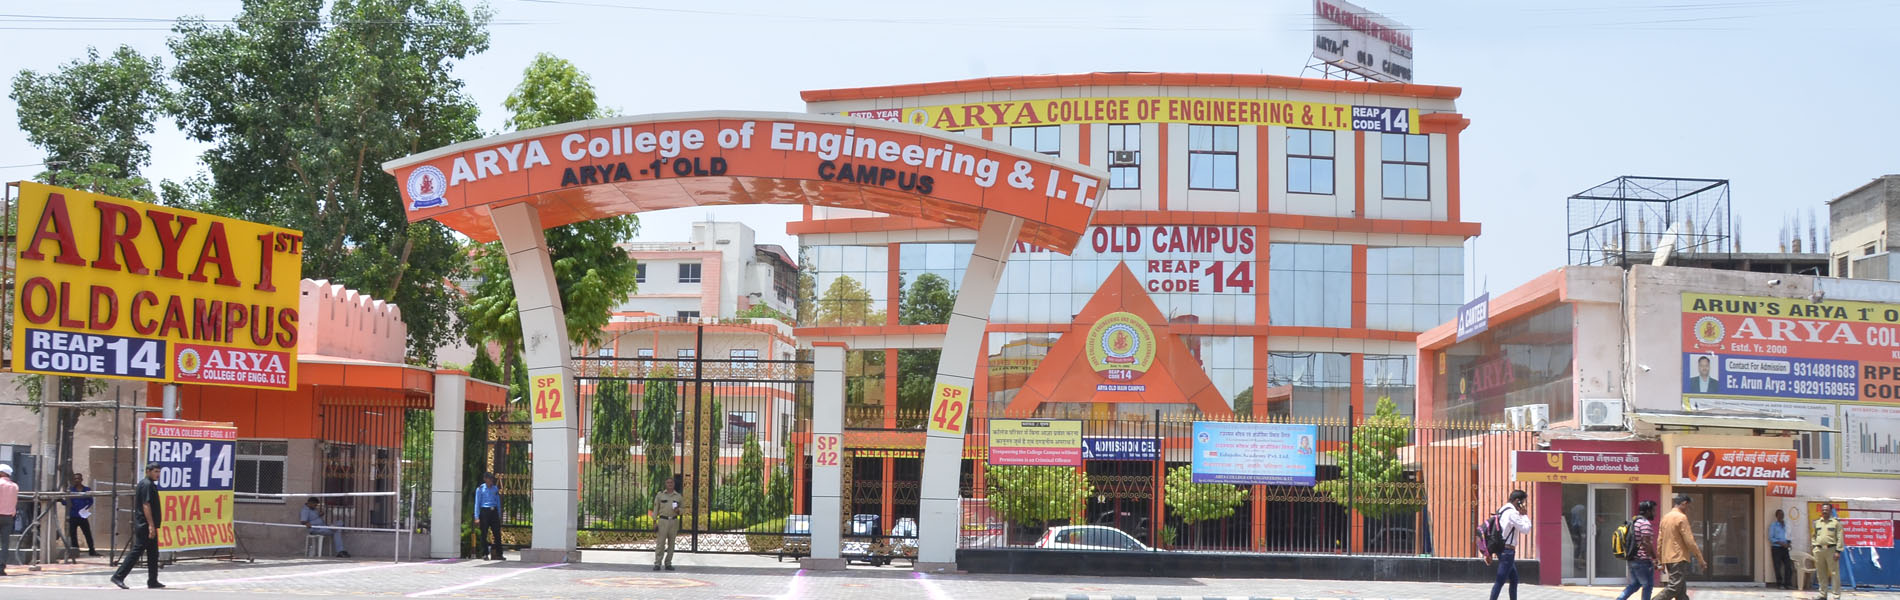 arya-college-jaipur, Arya Logo, Arya College of Engineering and iT, Arya 1st Old Campus, Arya SP42, Arya College Jaipur, Arya College, ACEIT, Best Engineering College in Rajasthan, Arya Kukas, Arya Jaipur, Top 5 Engineering College in Rajasthan